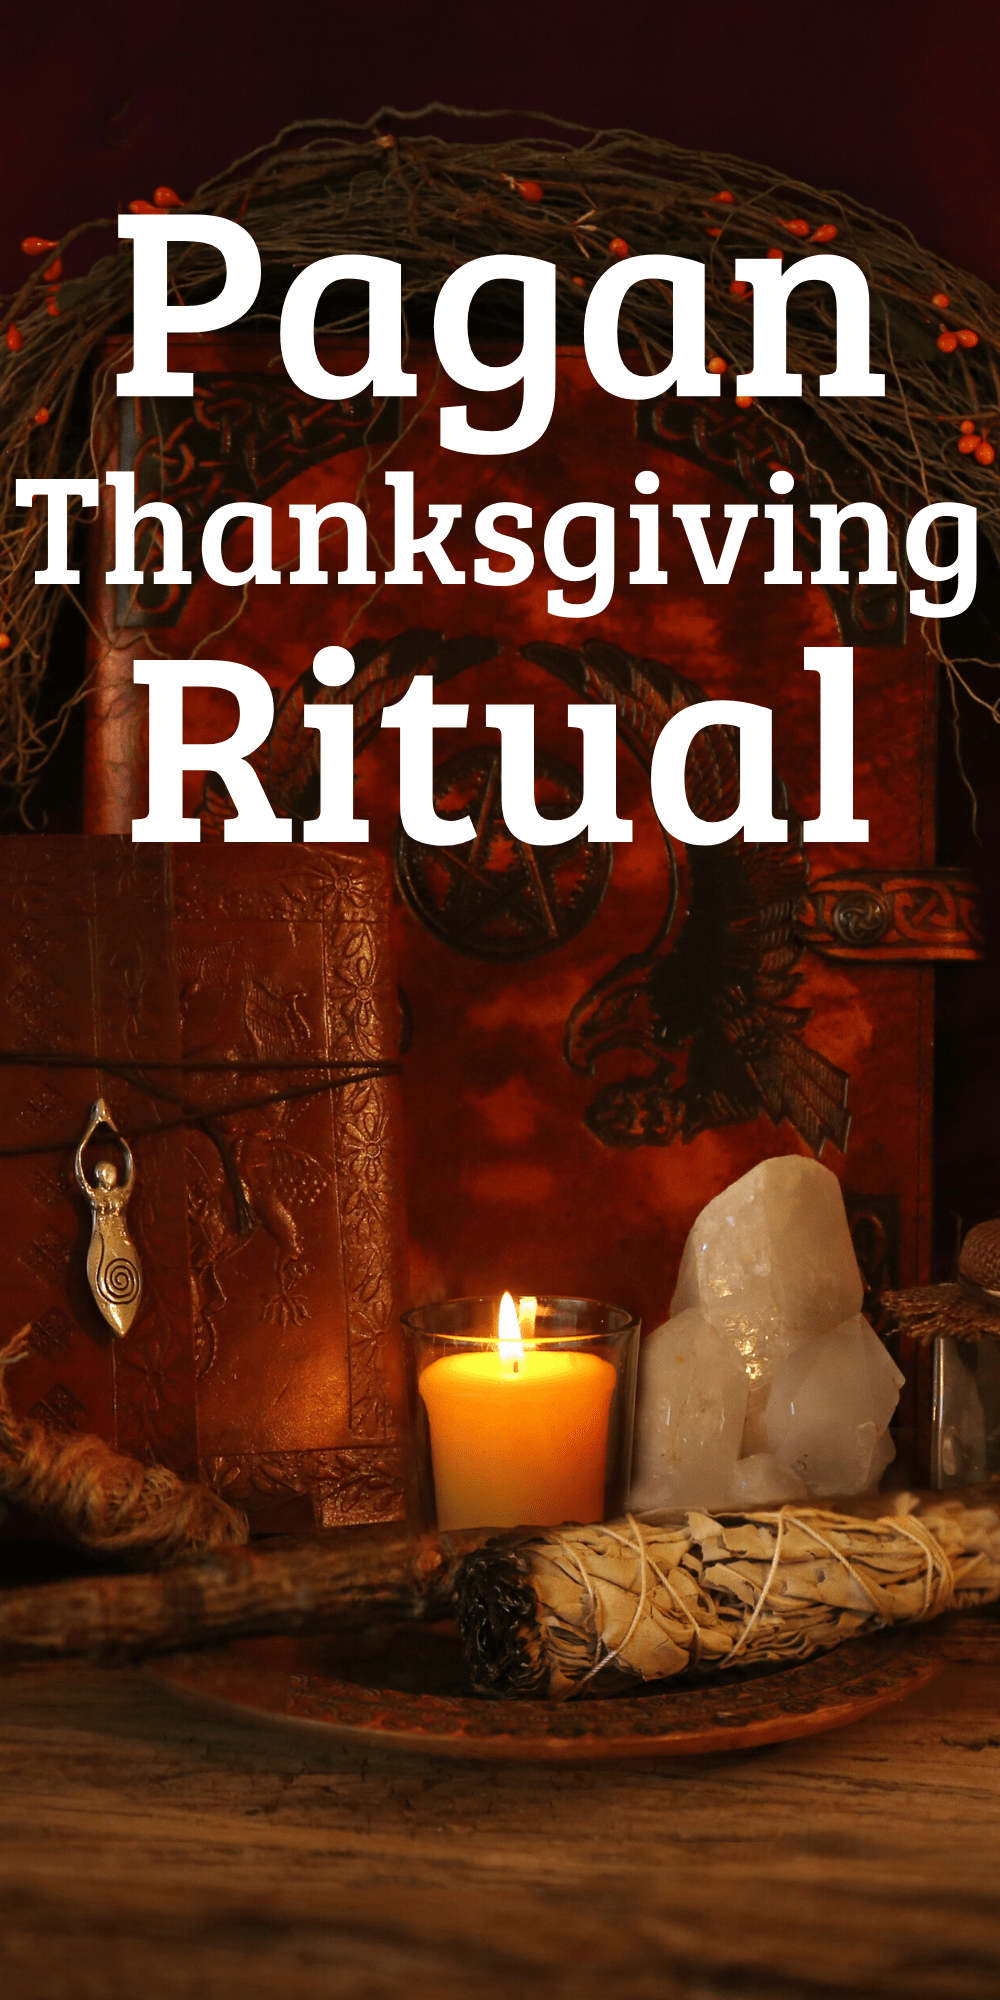 Pagan Pagan thanksgiving ritual Give thanks to the gods for all that you have received this year Witchcraft thanksgiving ritual Paganism in November Thanksgiving recipes...